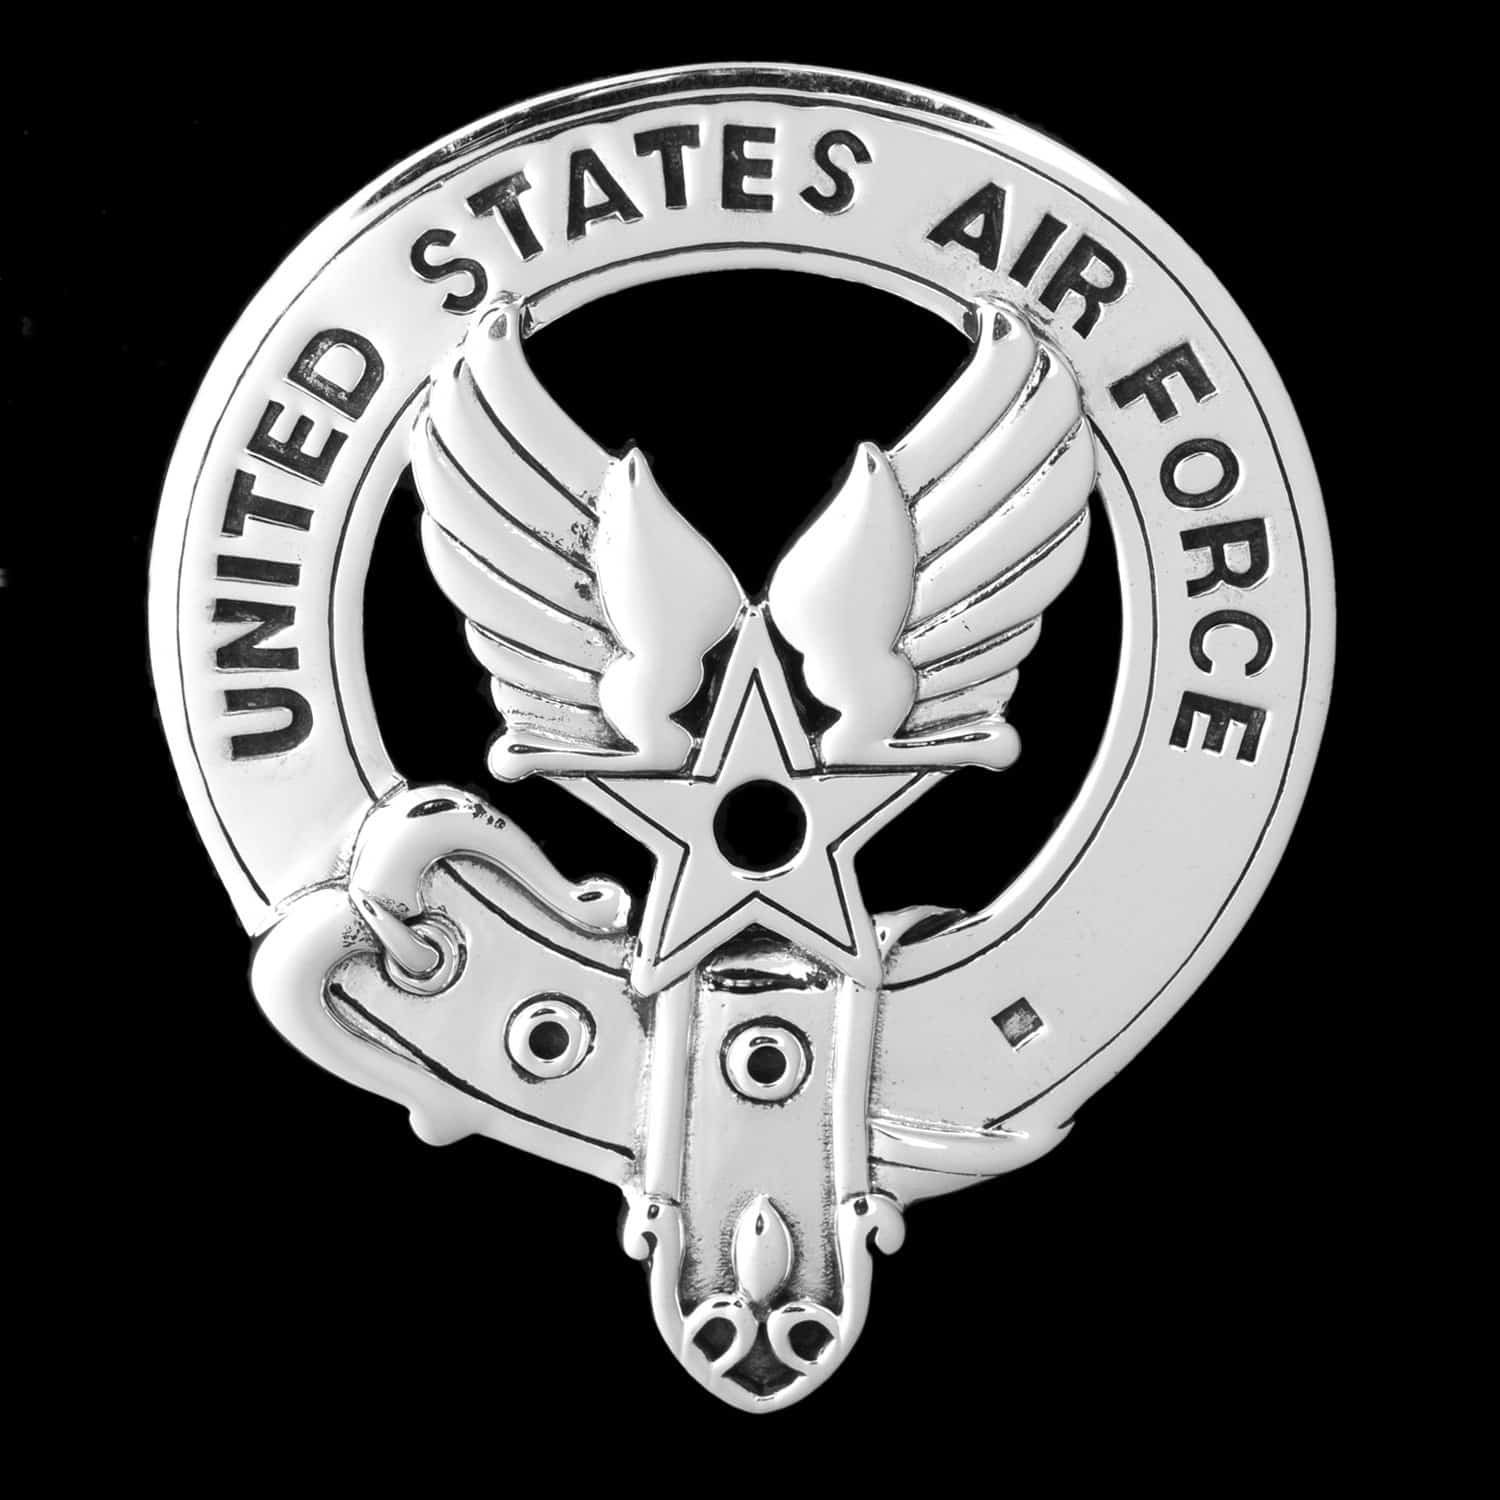 United States Air Force Sterling Silver Belted Bagpipers Badge - USAF ©celticjackalope.com